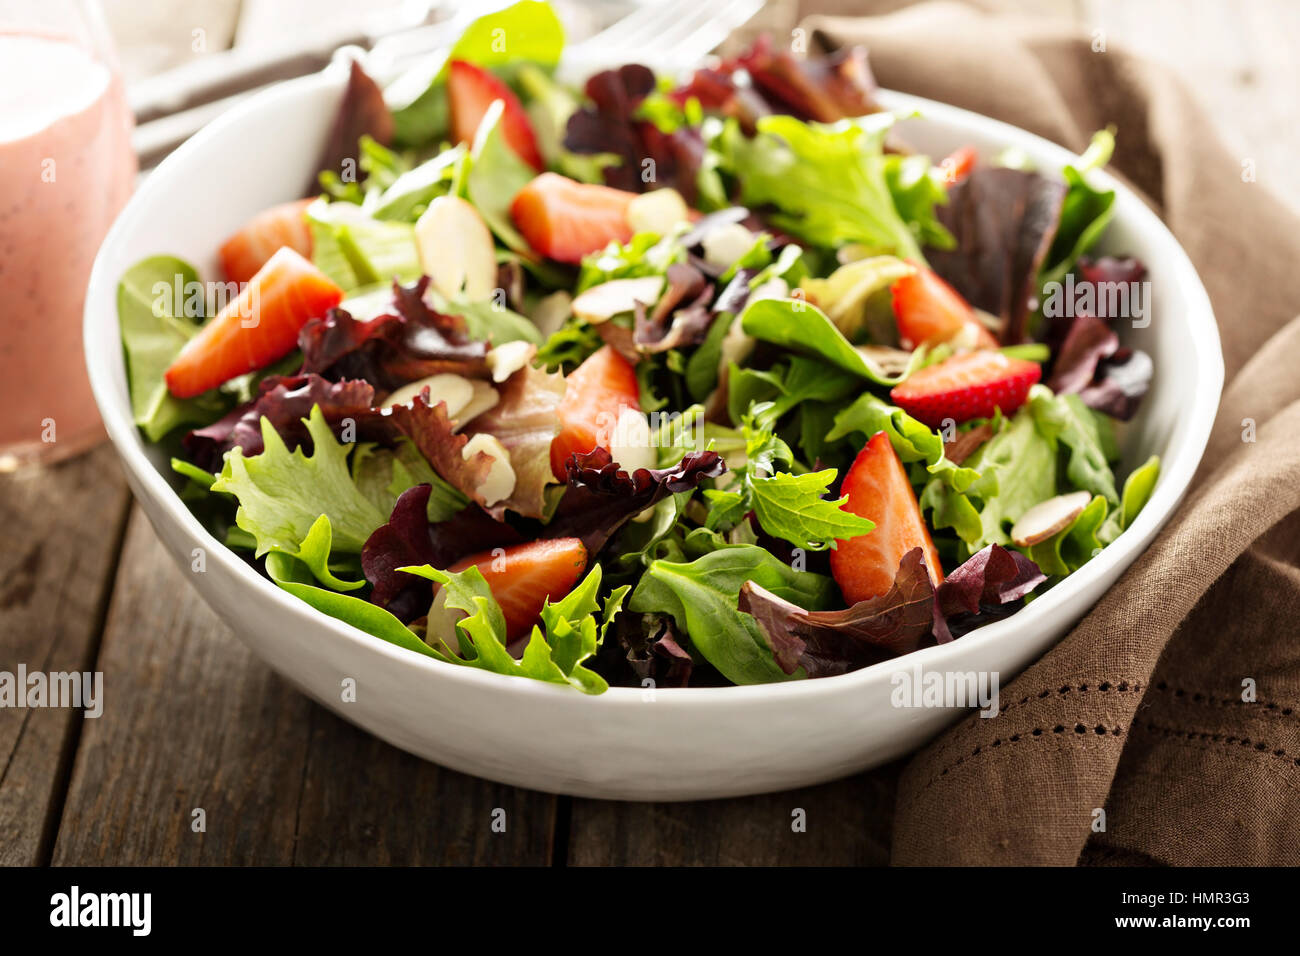 Healthy and colorful salad with spring mix greens and strawberries - Stock Image